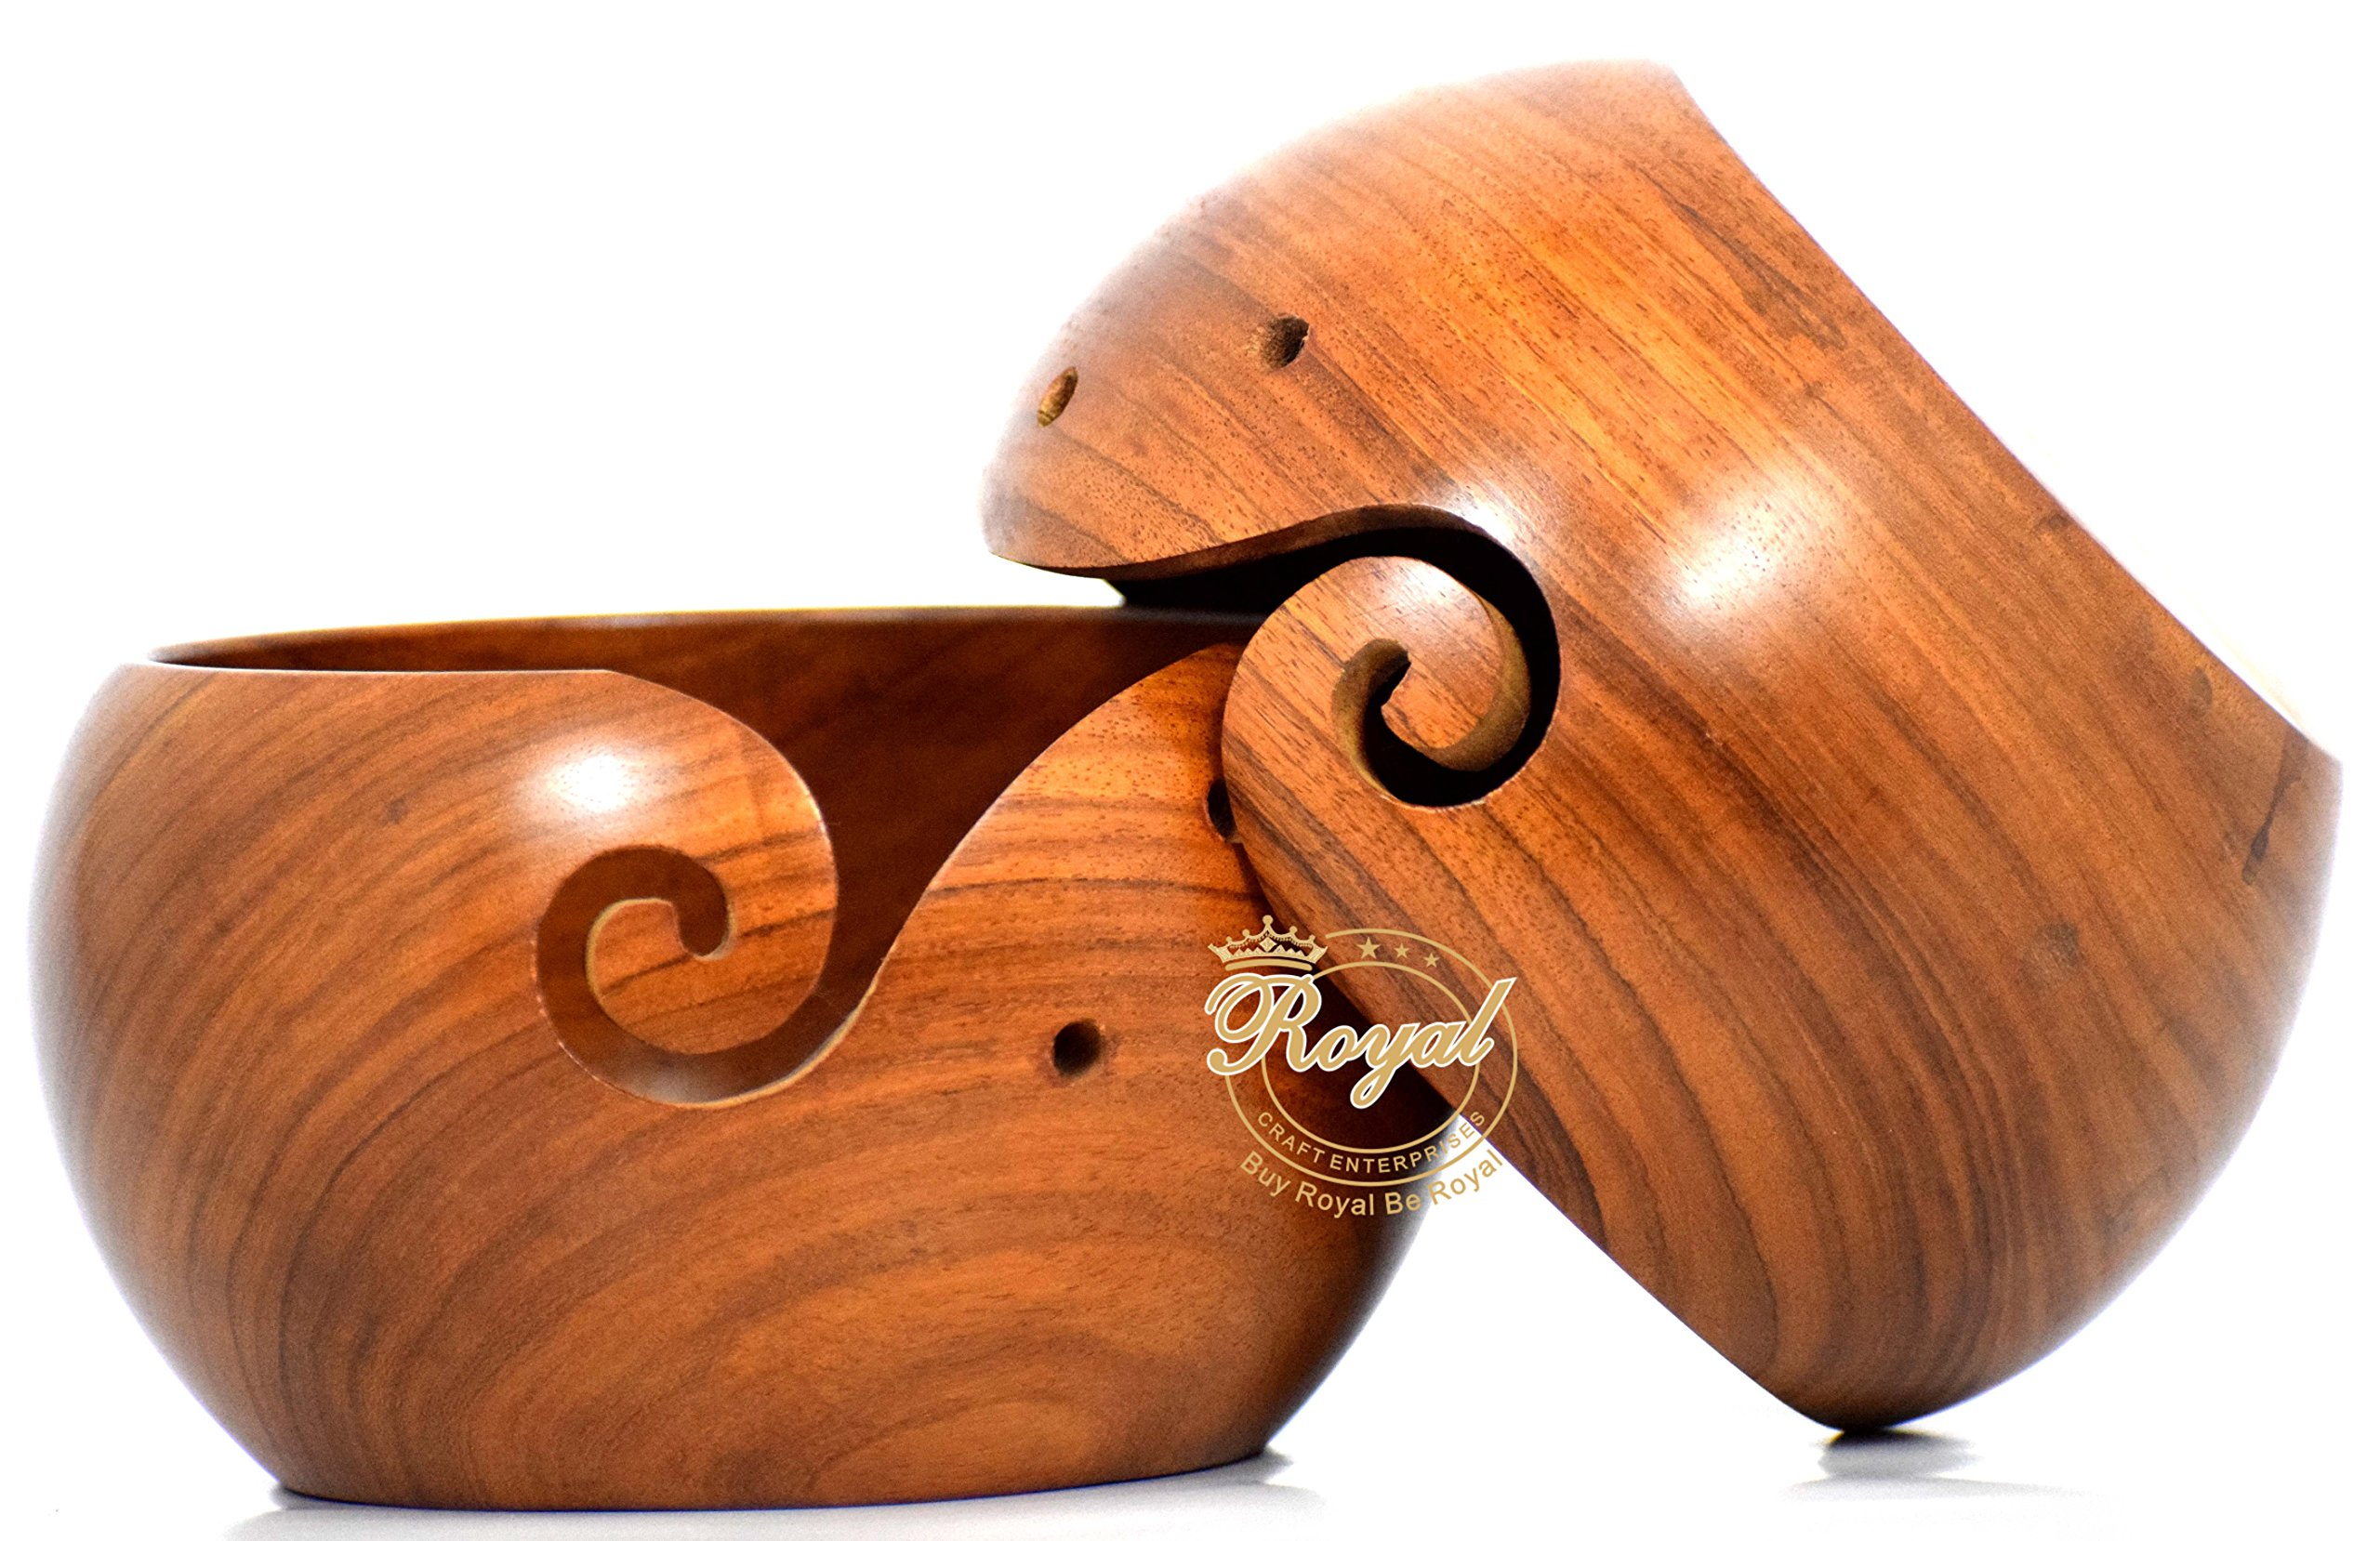 Rosewood crarfted wooden yarn storage bowl knitting crochet accessories Royal Craft Enterprises (7 X 4 inch)